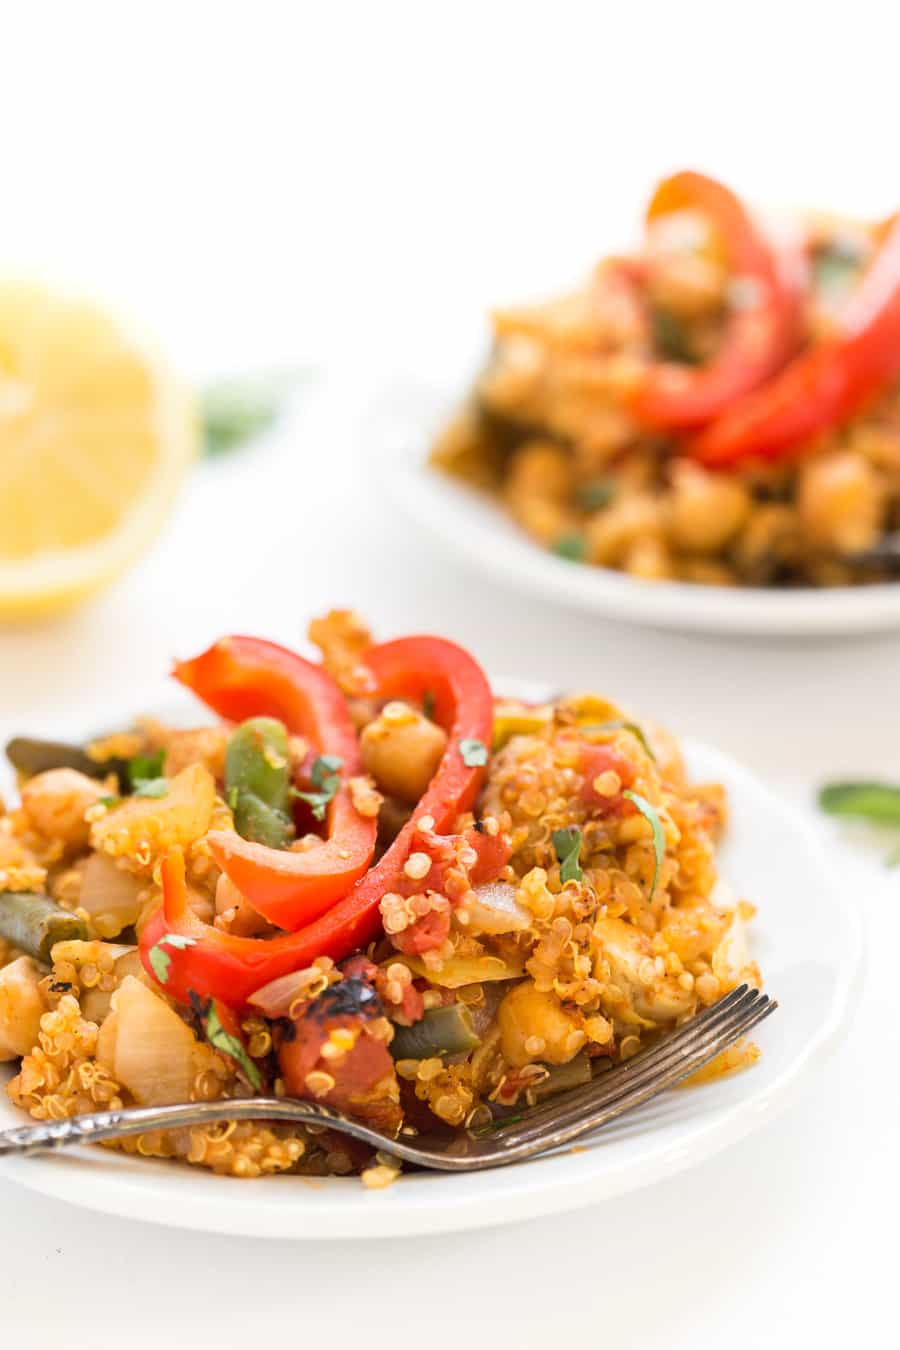 This ONE PAN Vegetable Quinoa Paella is a cinch to make and is ready in under 40 minutes!